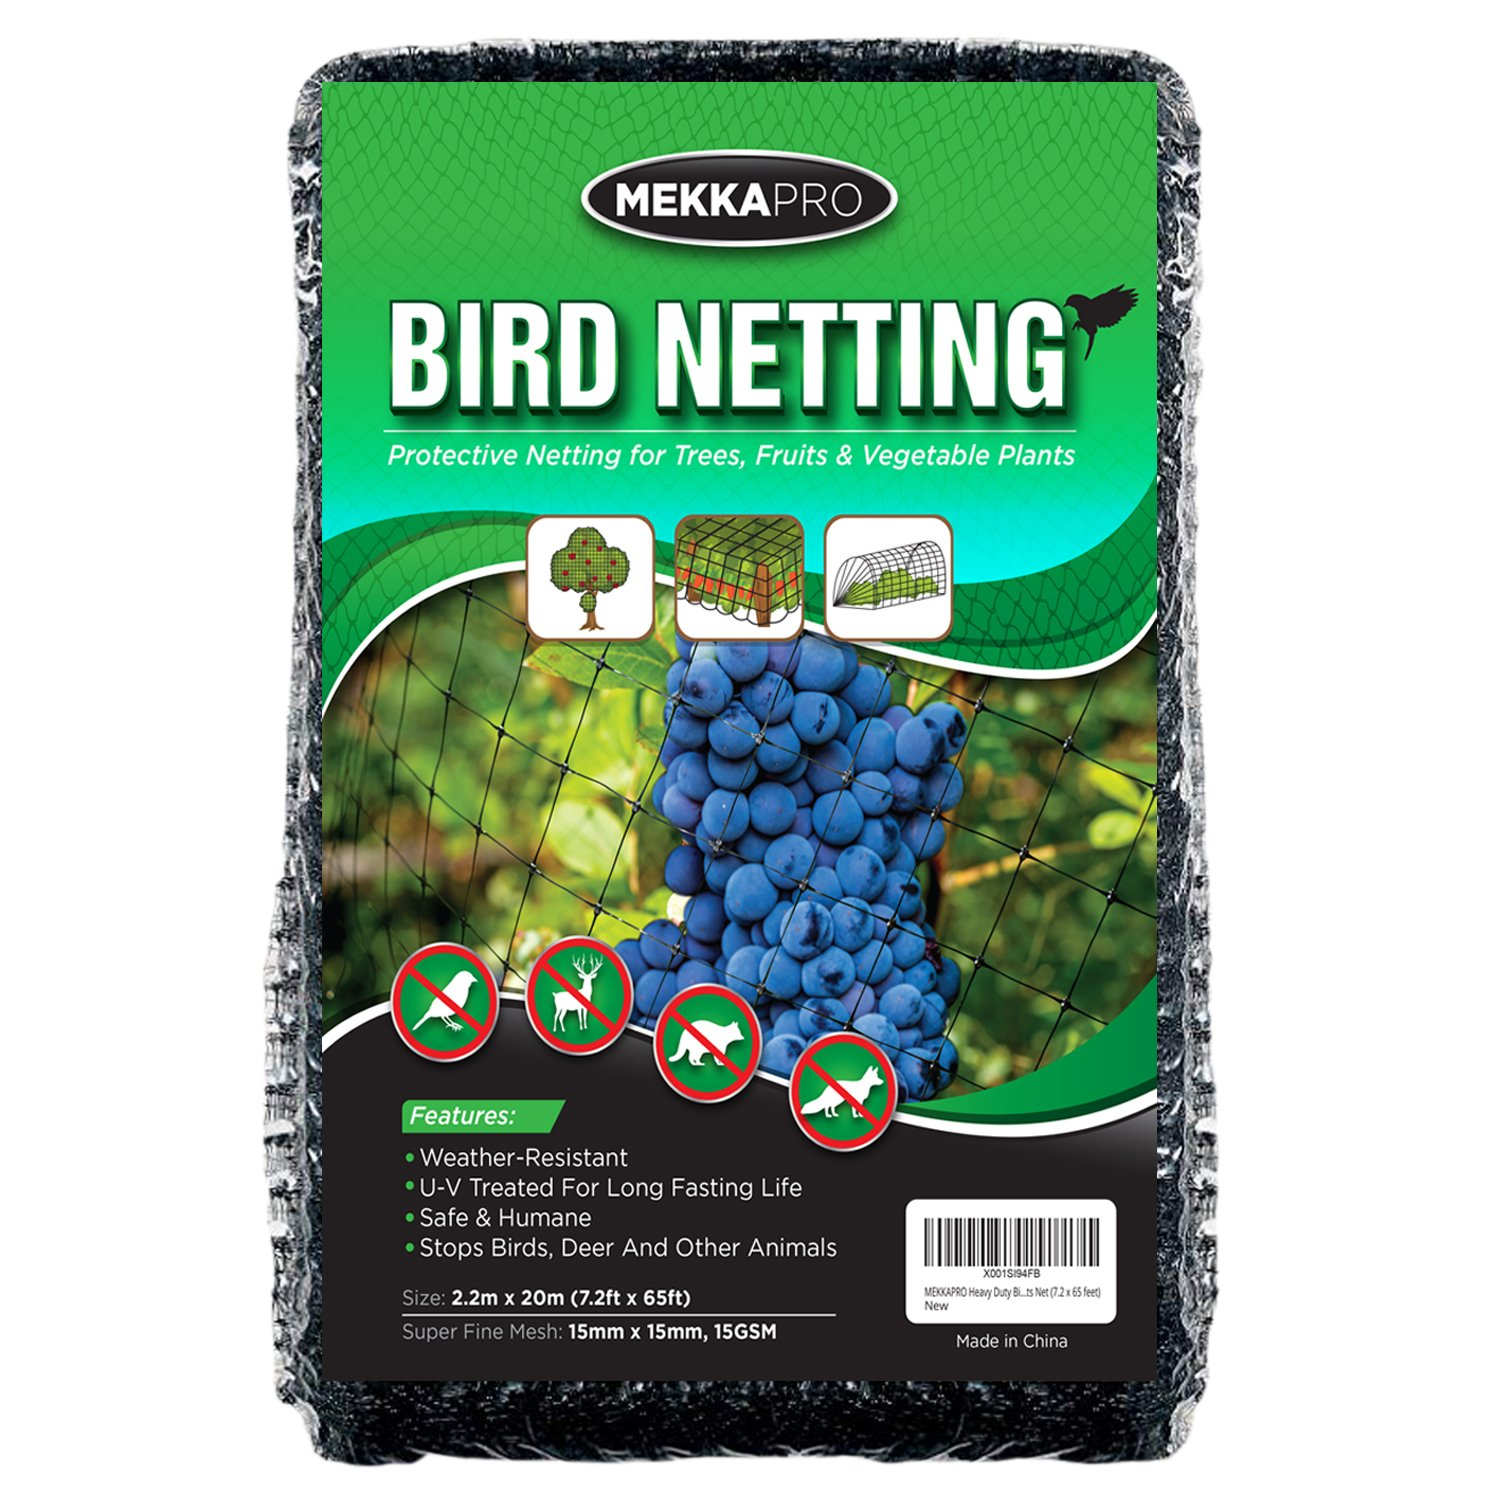 MEKKAPRO Heavy Duty Bird Netting, Garden Nets for Fruit, Vegetable, Plant Trees | Deer Netting and Fencing | Anti-Bird, Deer and Pests Net (7.2 x 65 feet)